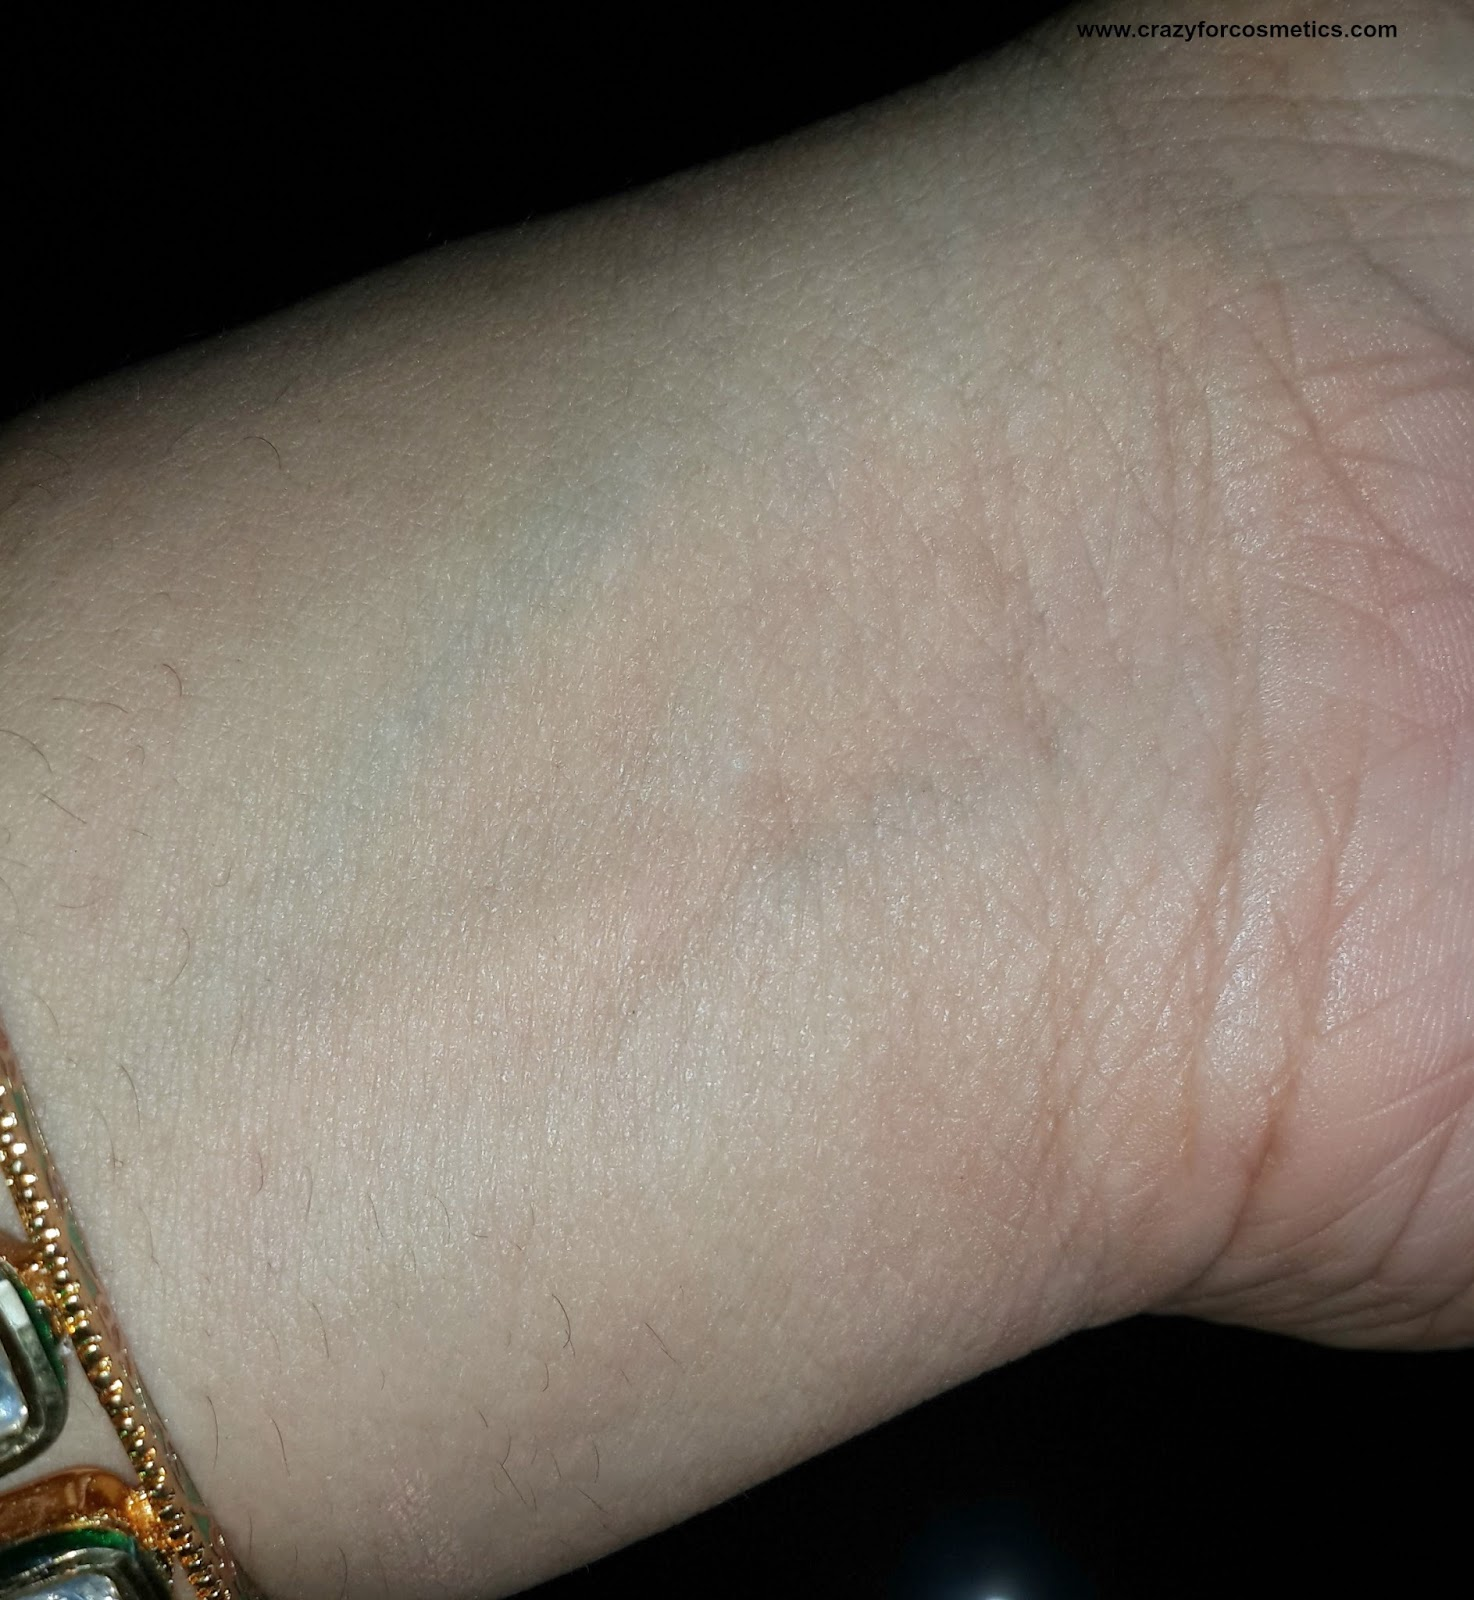 mac bb cream India, mac bb cream price India, mac prep and prime swatches under flash